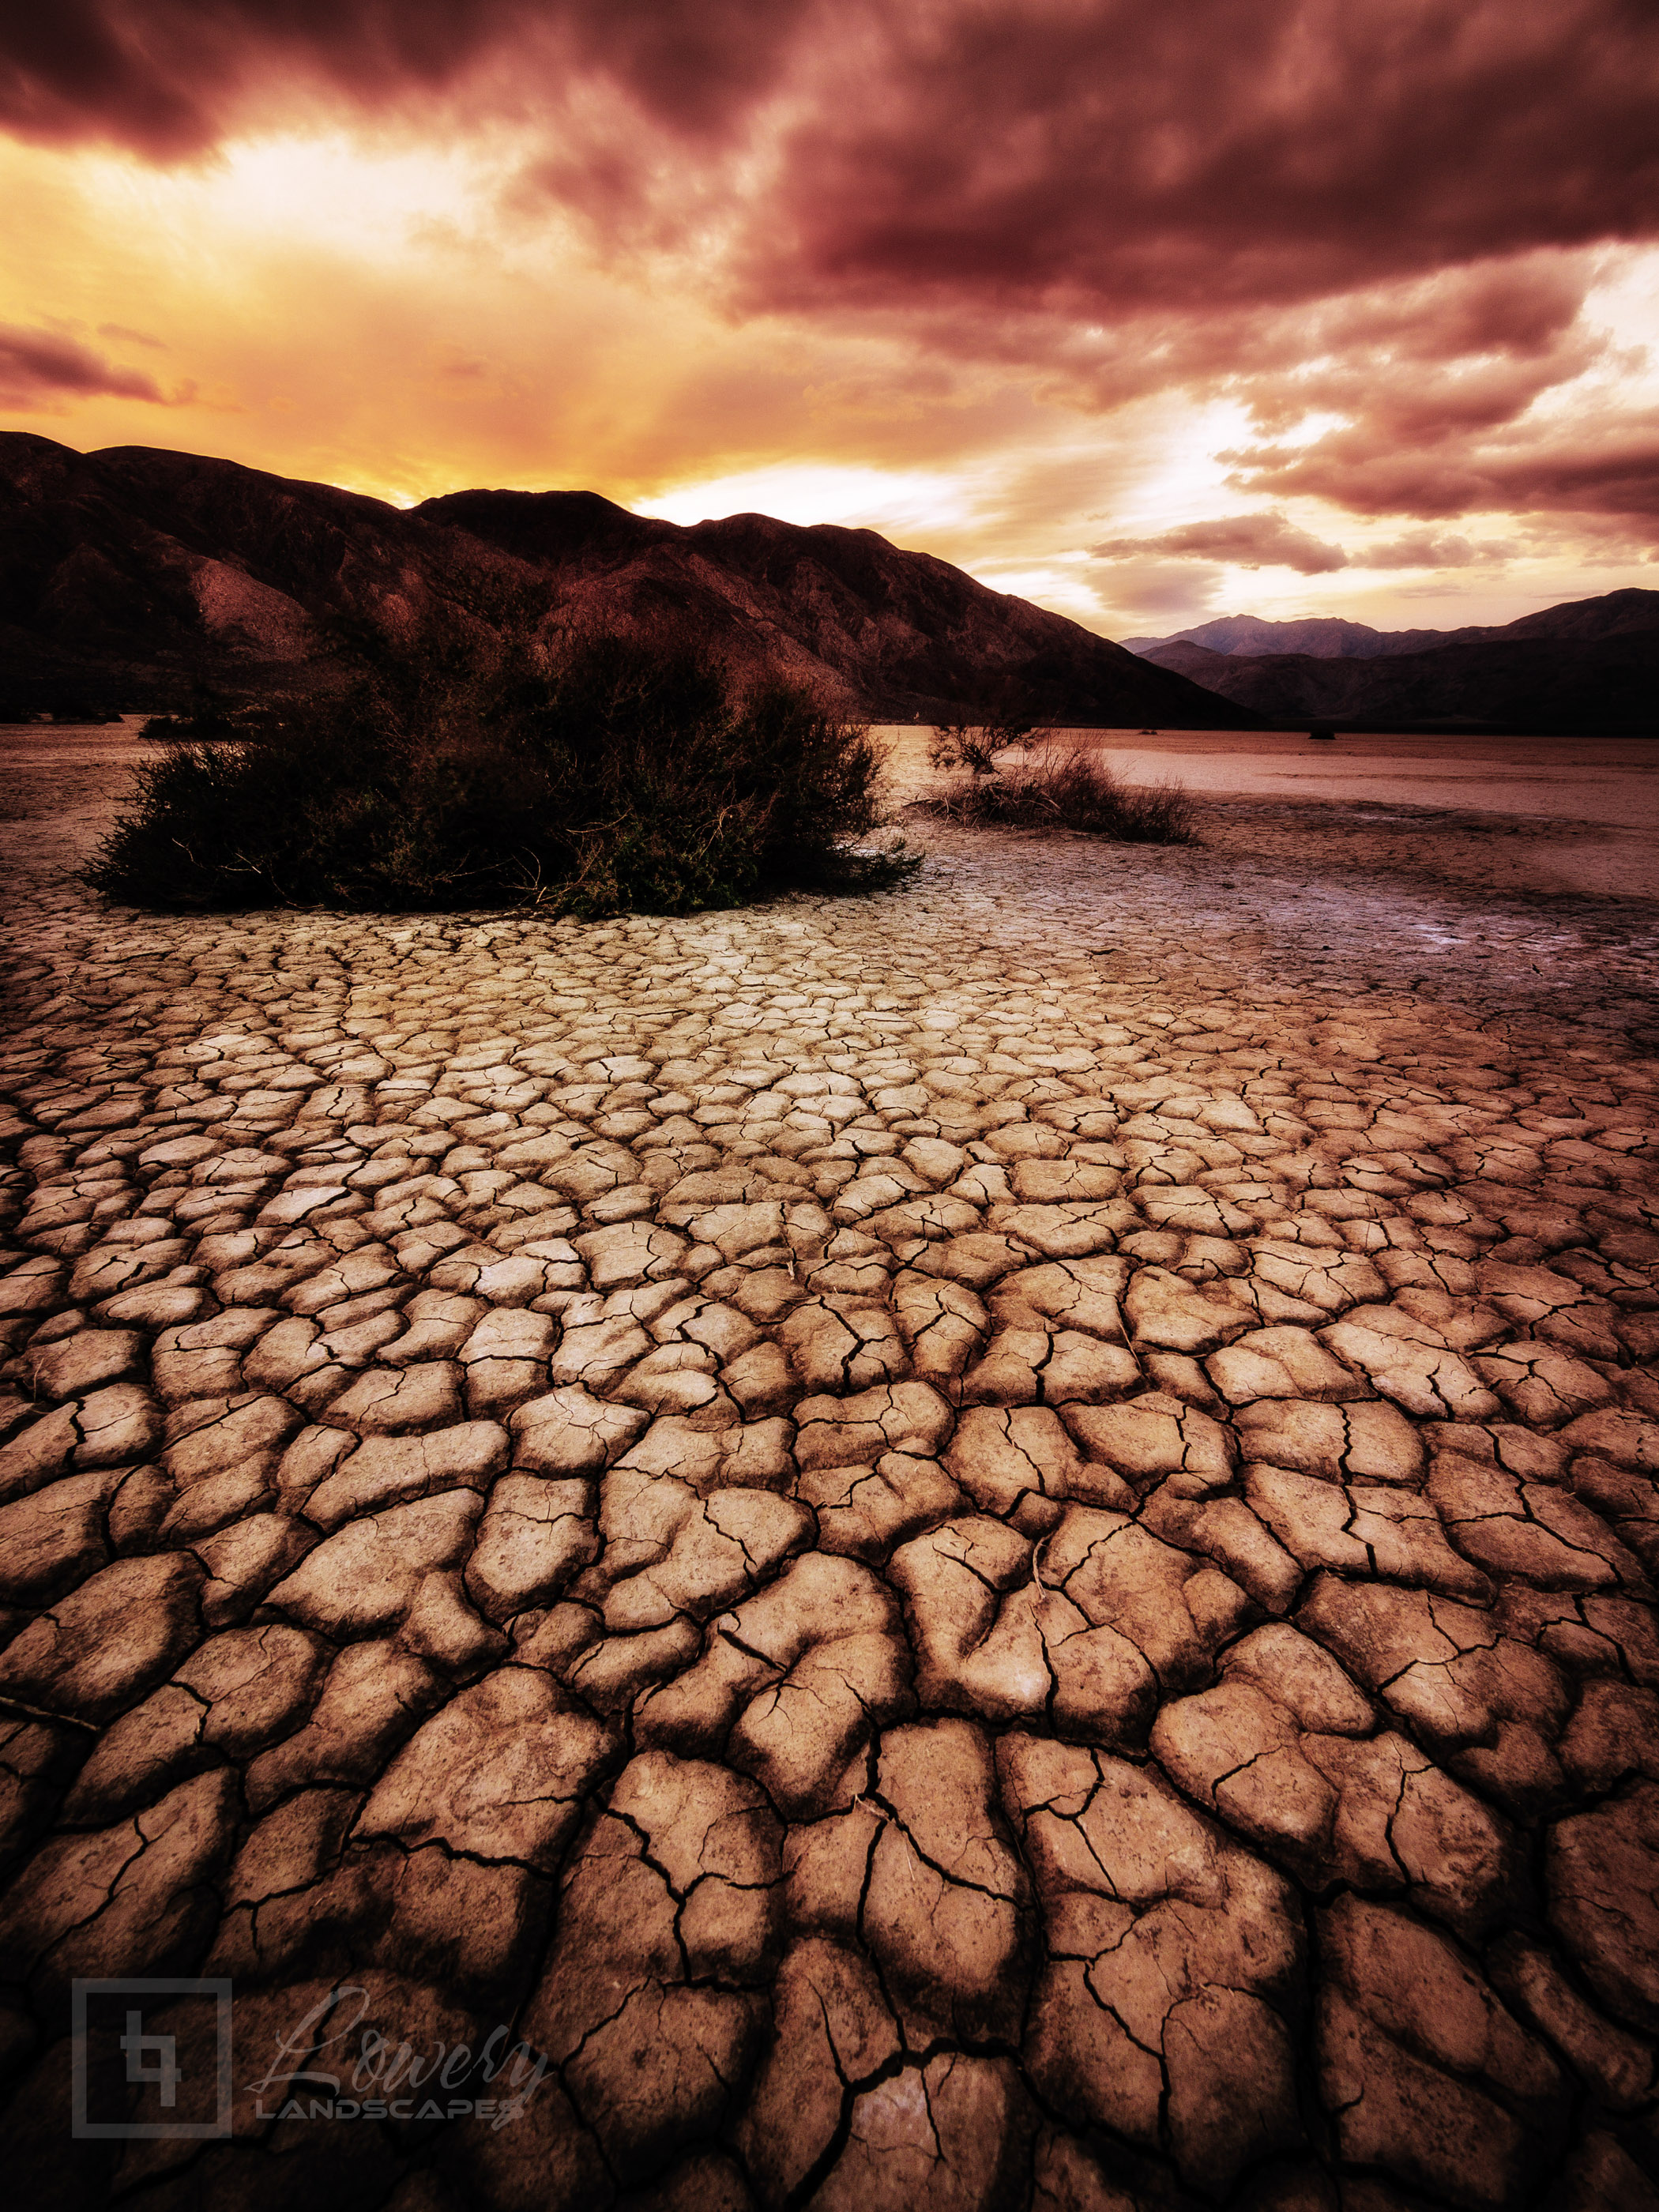 The Clark Dry Lake in Anza-Borrego Desert State Park in Southern California is perpetually dry and cracked, much like the playas in Death Valley.